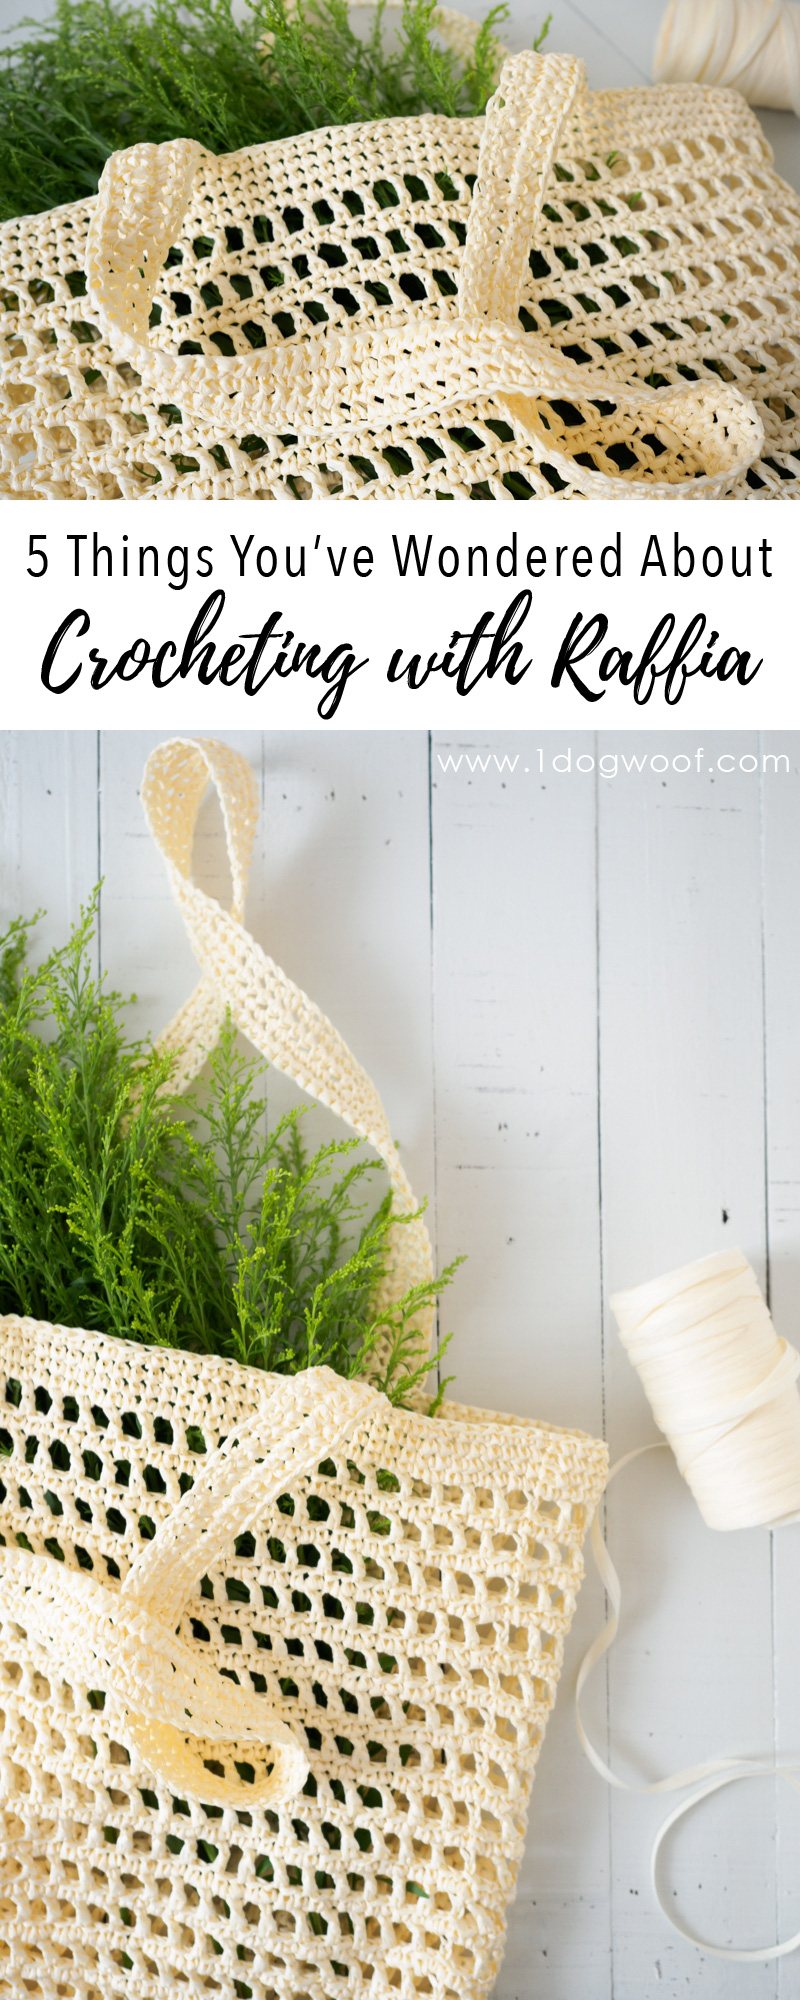 5 Things You've Wondered About Crocheting with Raffia